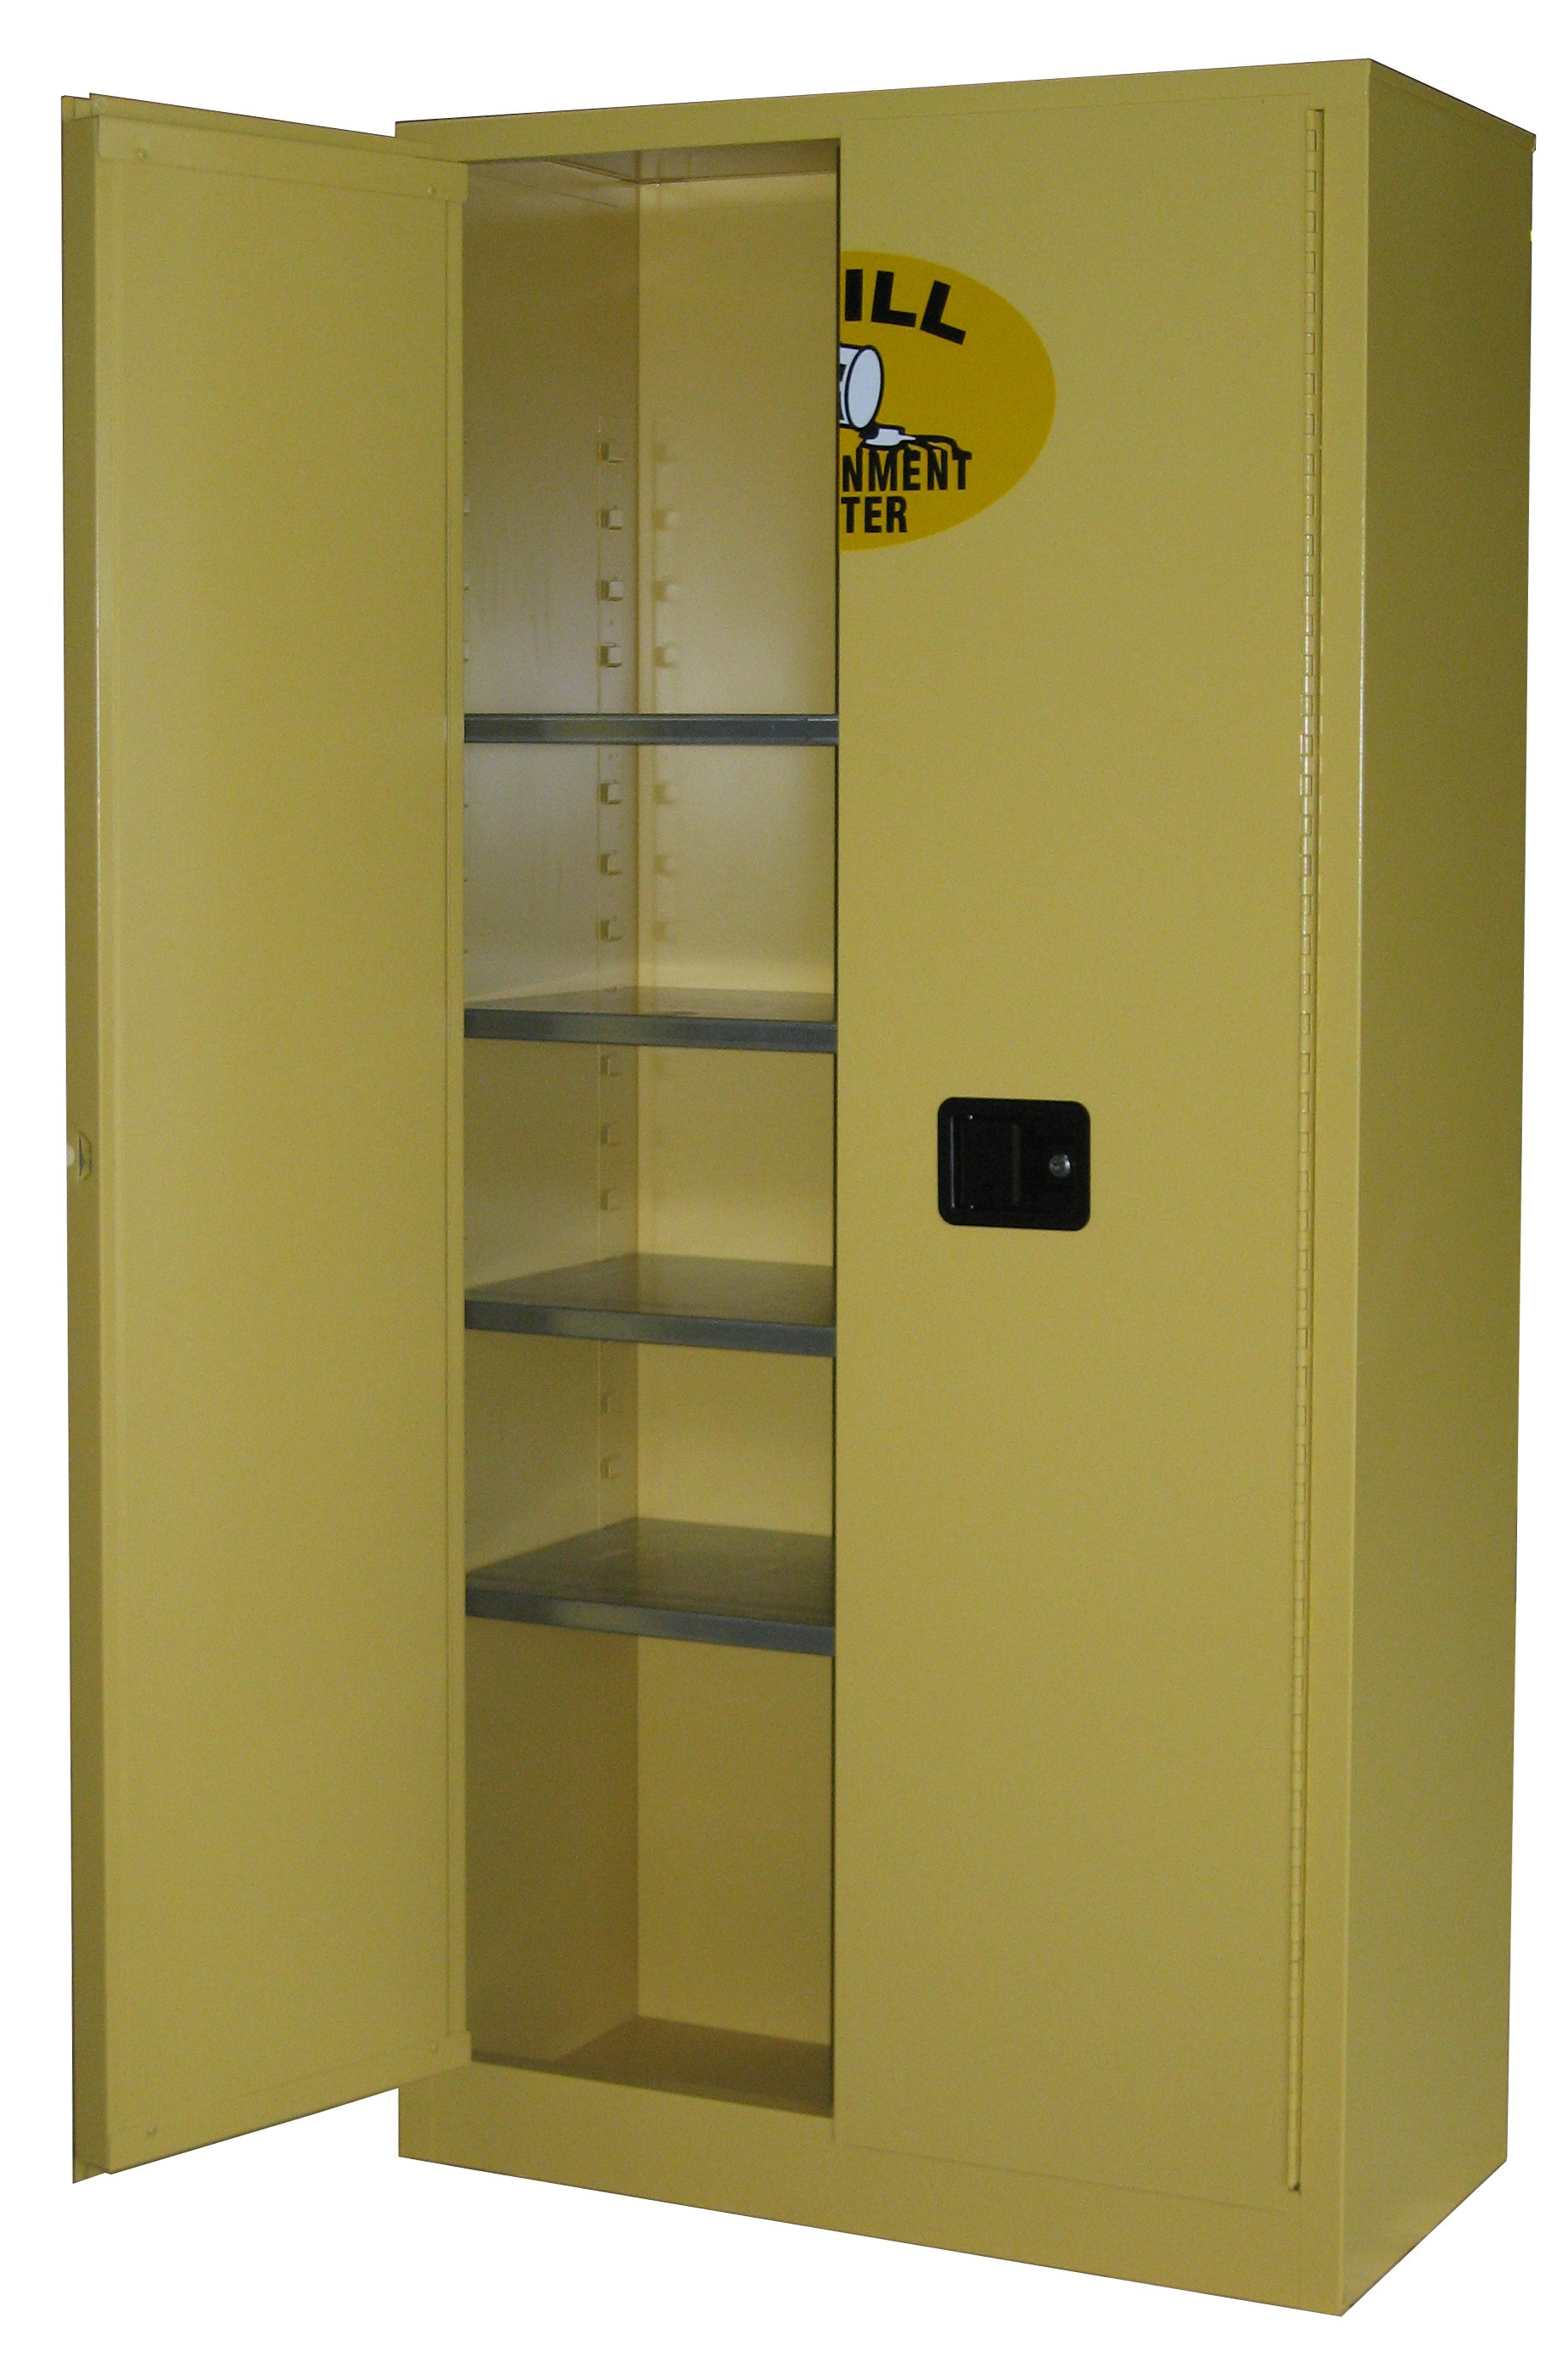 SCC172 - Spill Containment Cabinet - 27 Cubic Feet Cabinet